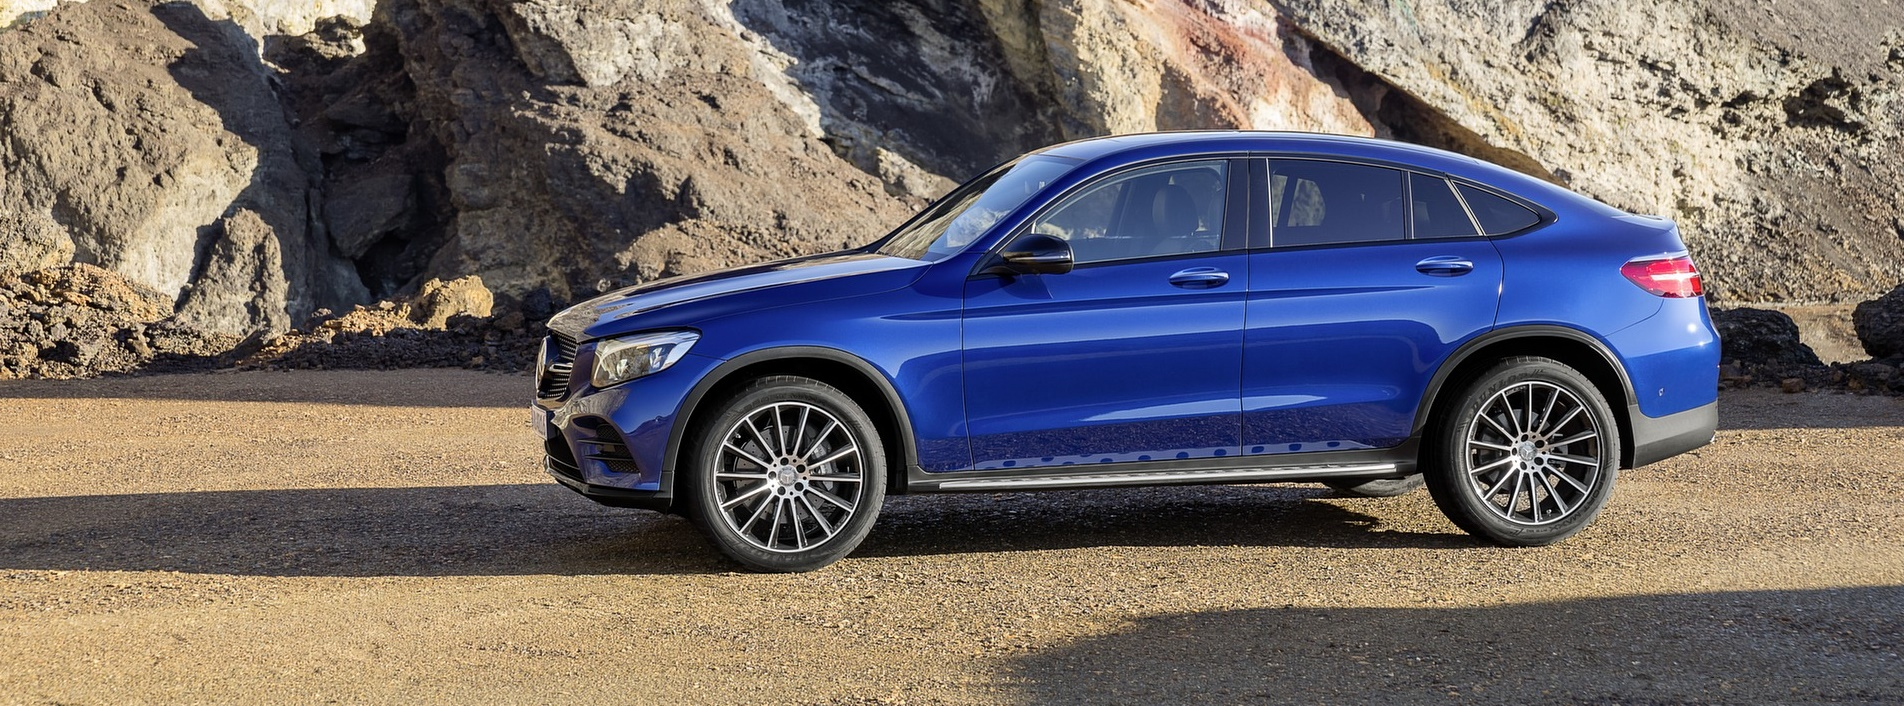 MERCEDES GLC COUPE Glc 220 D 4matic Business